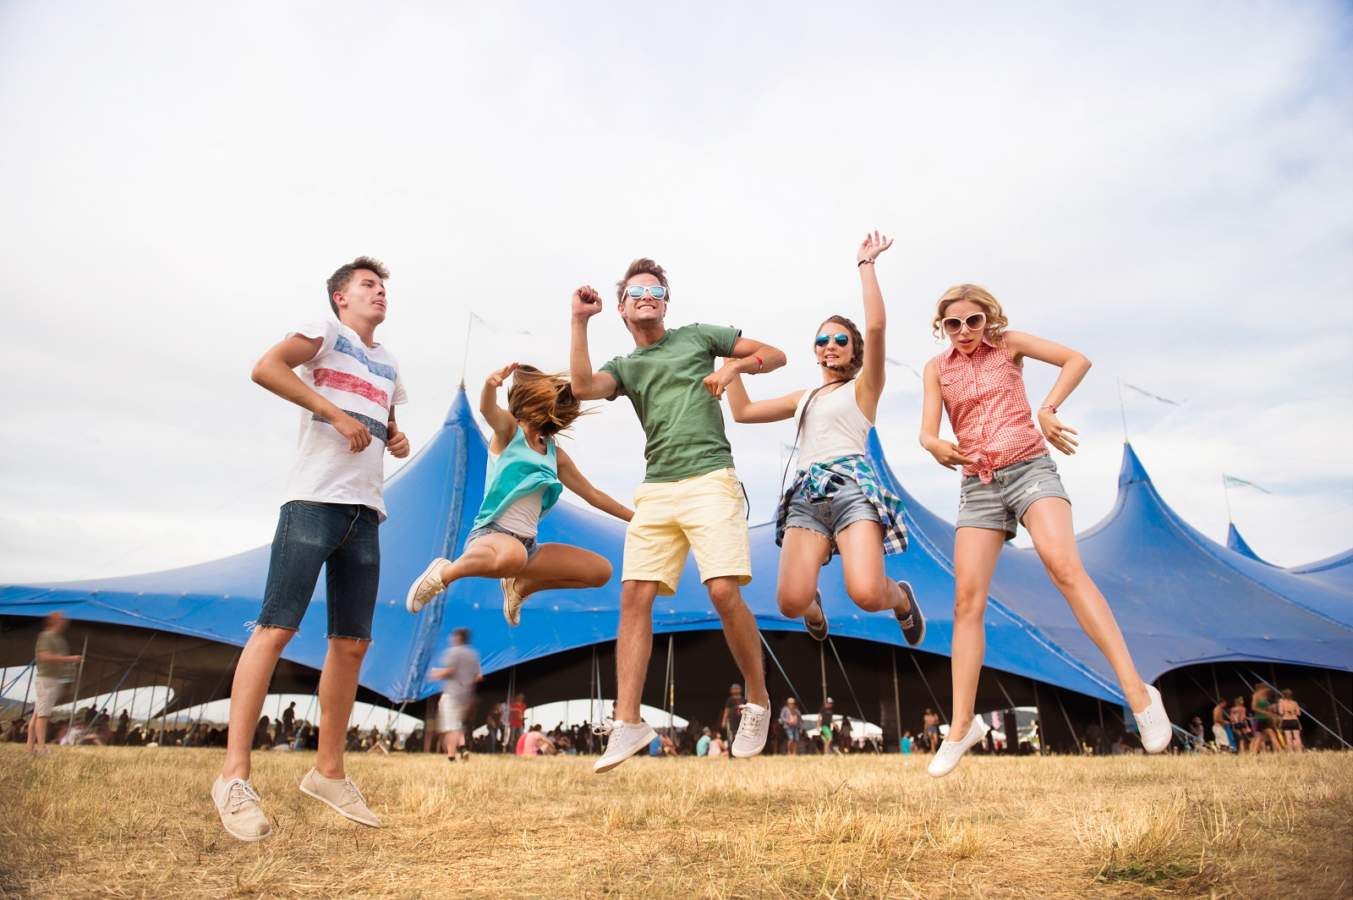 https://www.kaunieciams.lt/wp-content/uploads/2019/07/teenagers-at-summer-music-festival-dancing-and-PV3CBYM.jpg